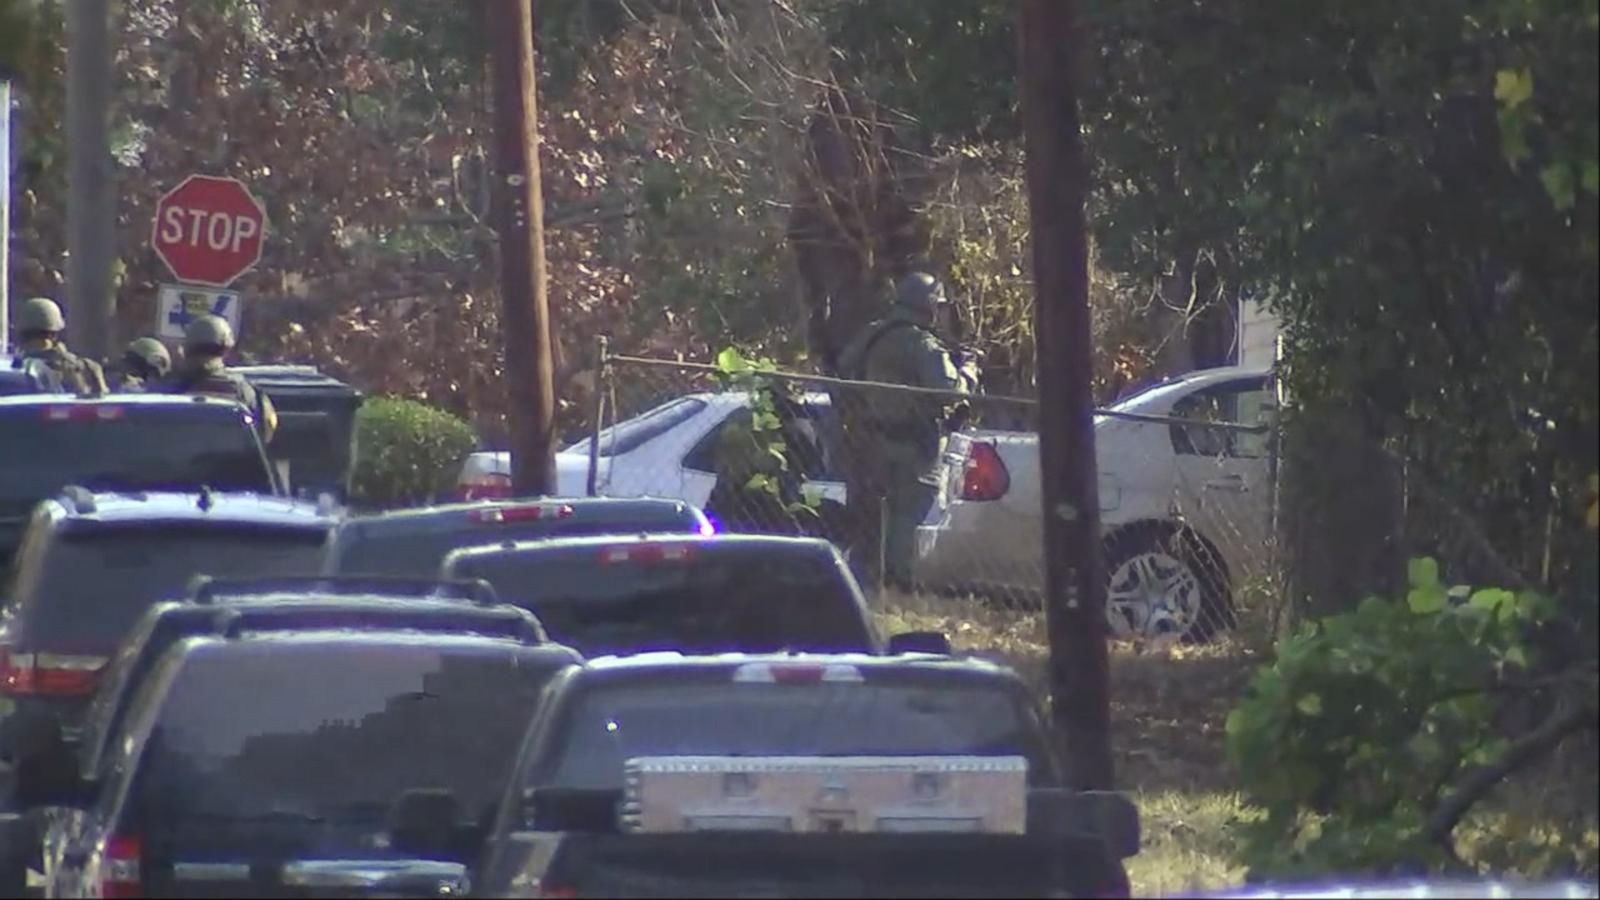 A man suspected of shooting two police officers in Georgia is now dead.